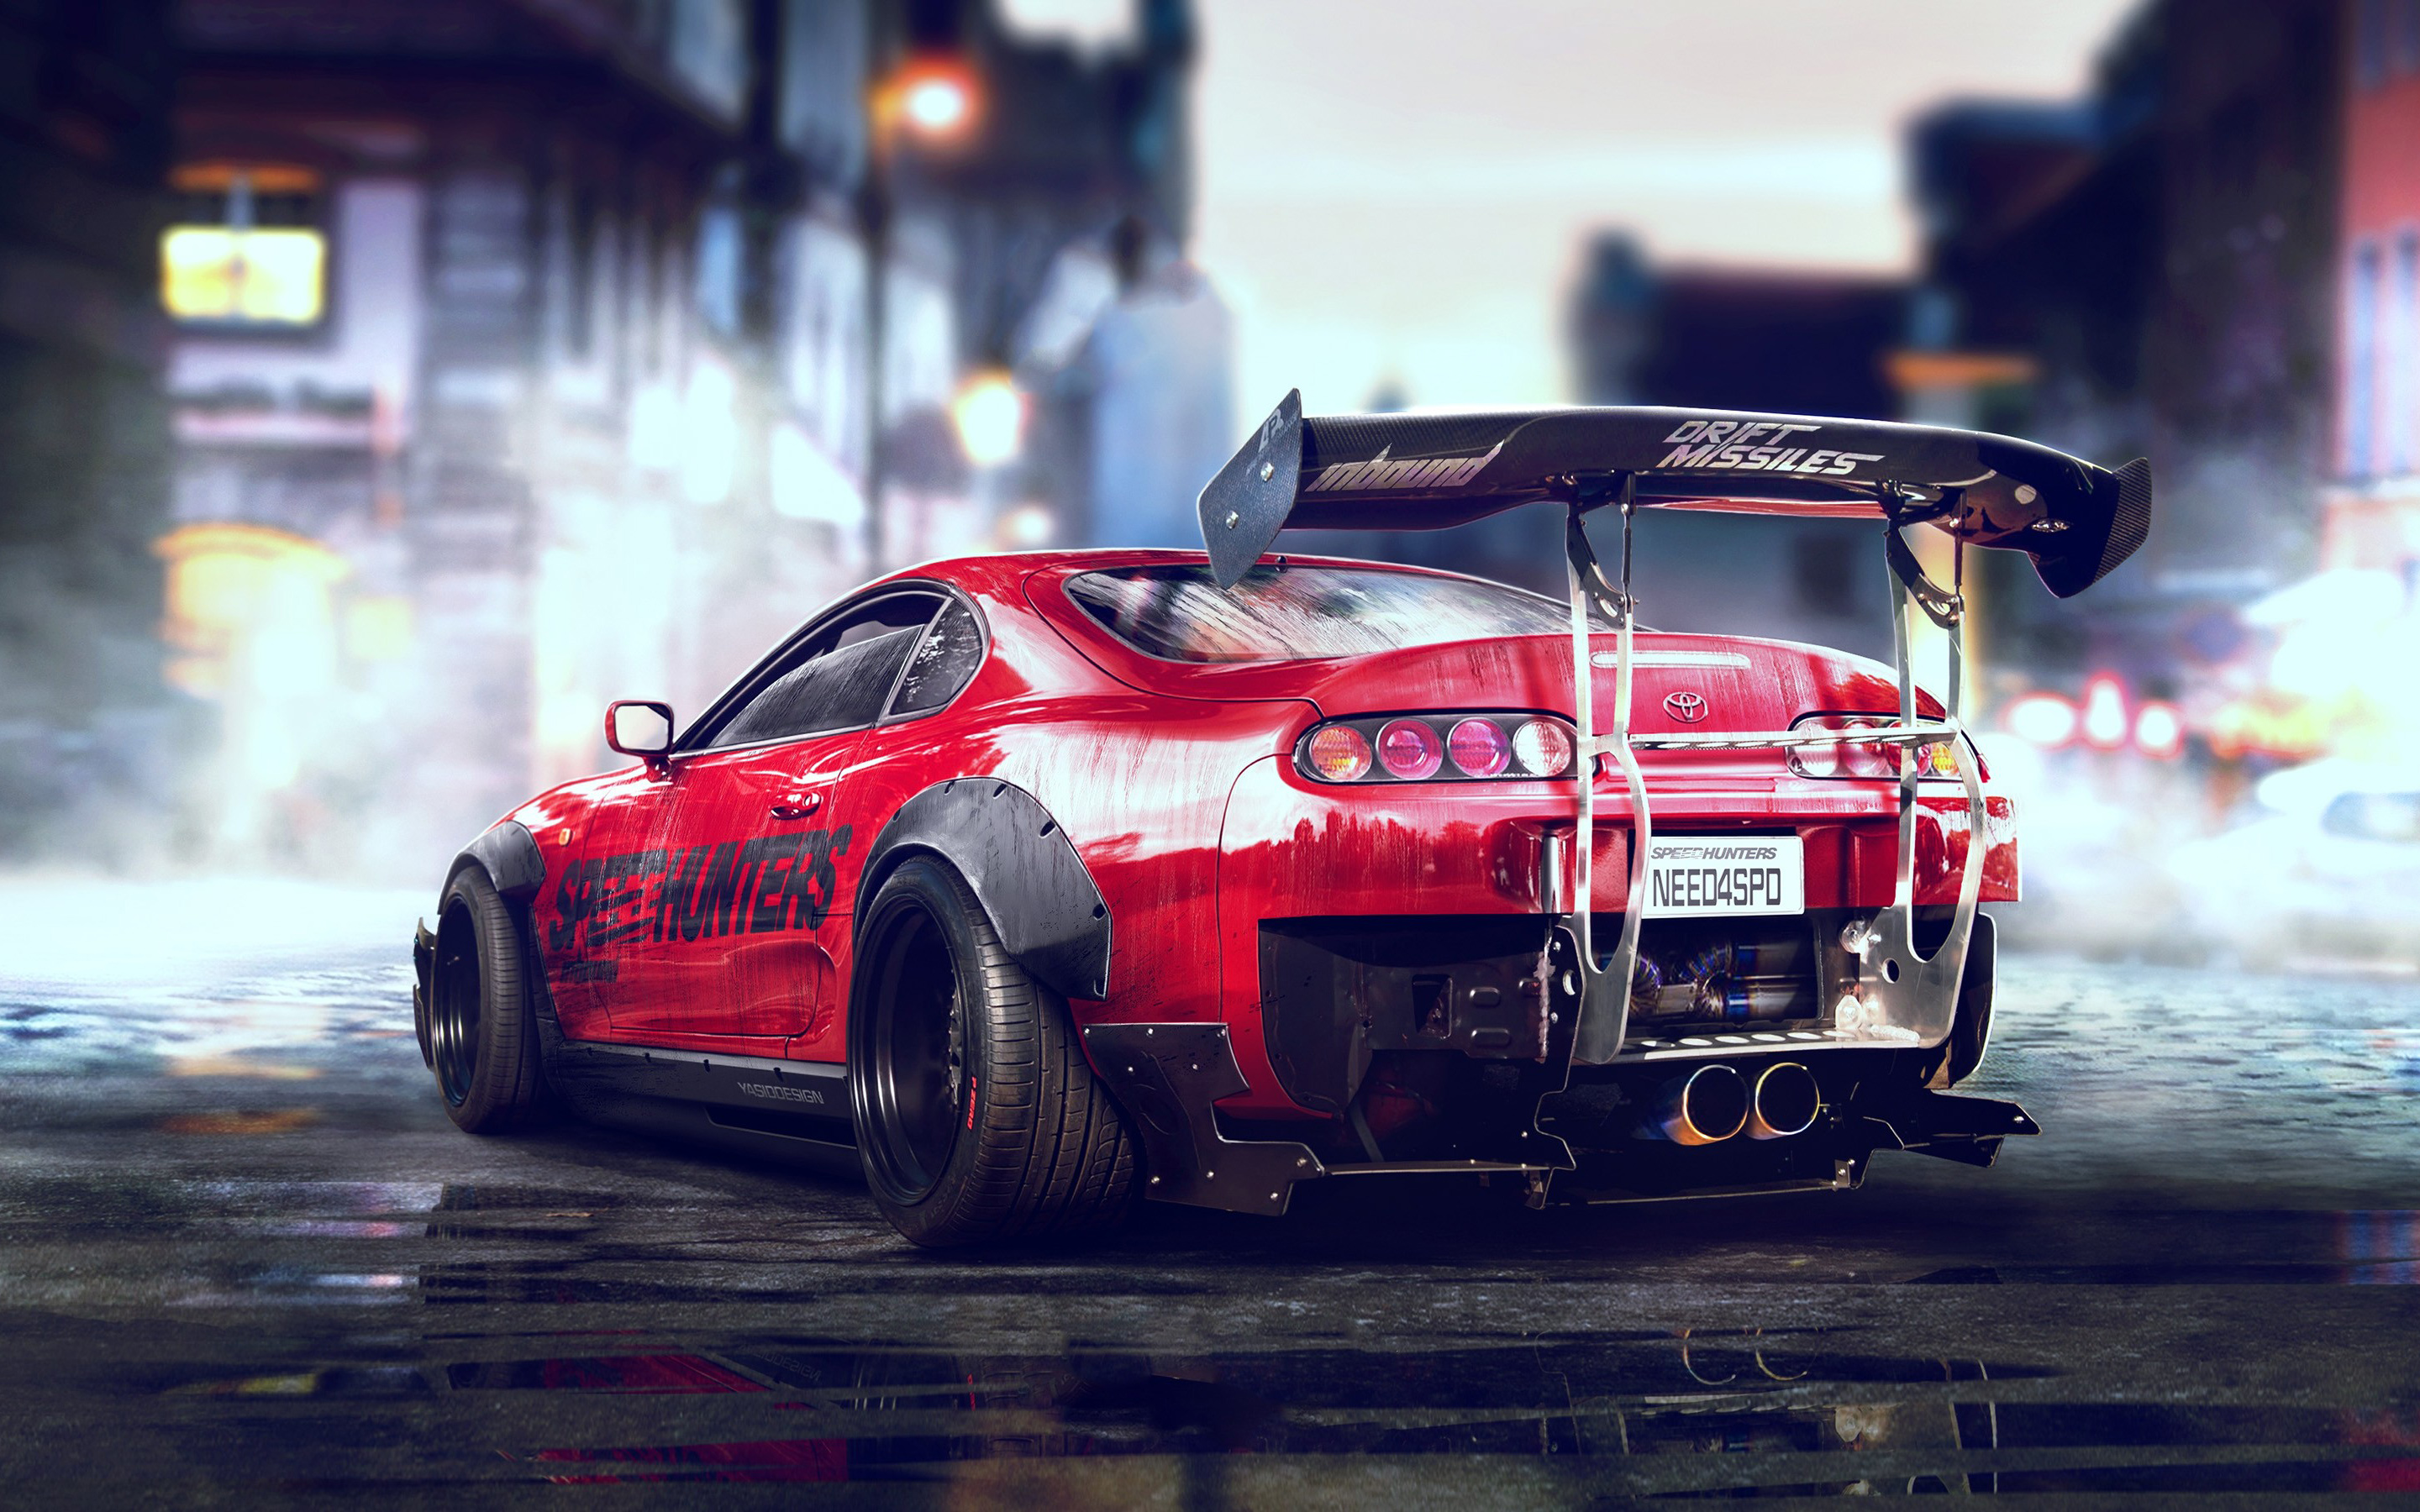 toyota supra - need for speed full hd wallpaper and background image